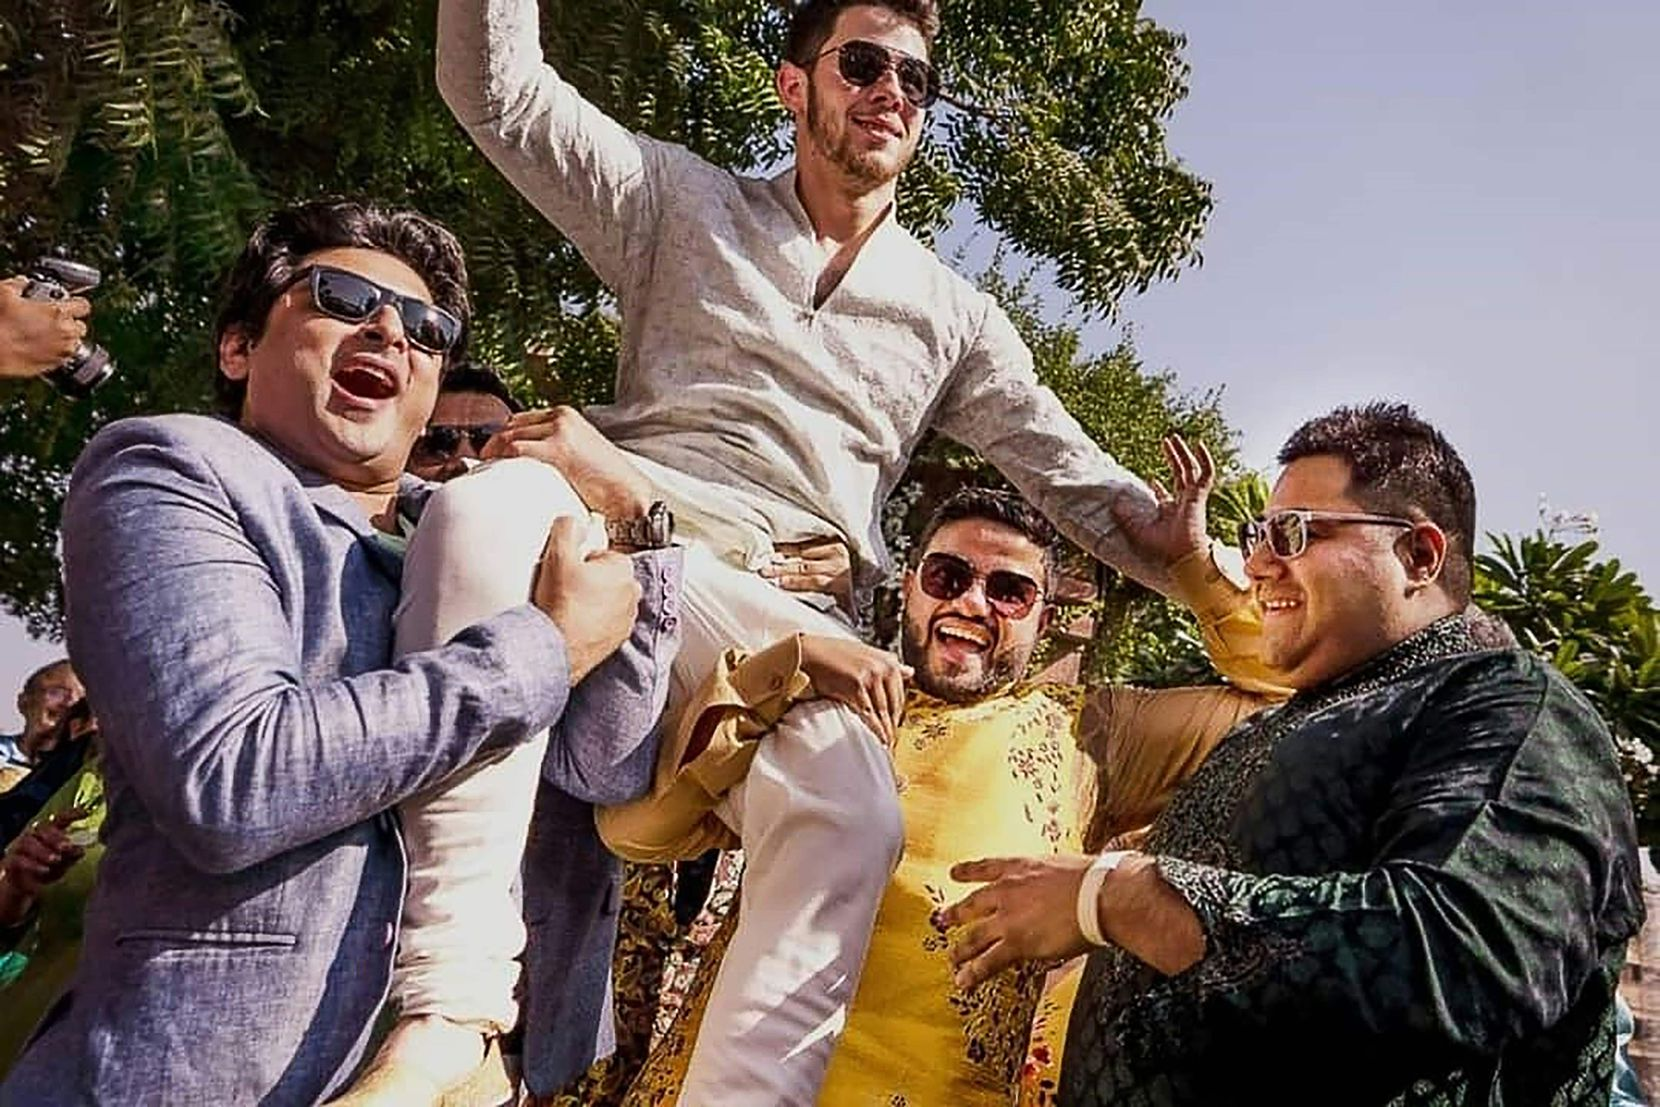 This handout photo released by Raindrop Media shows a dancing Nick Jonas being carried by friends during his wedding celebration at Umaid Bhawan palace in Jodhpur.